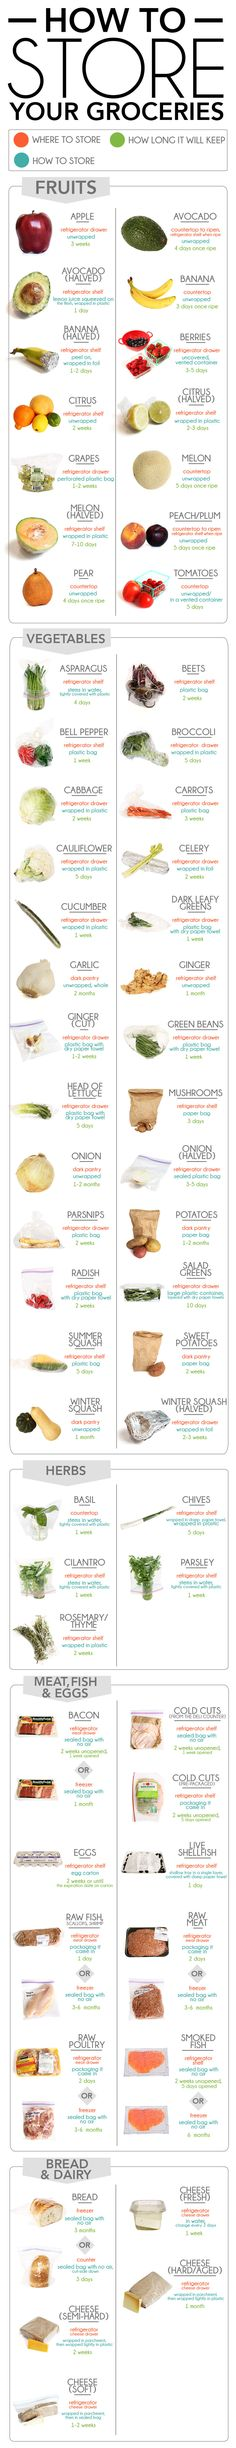 where to store your groceries + how long they will last! #health #food